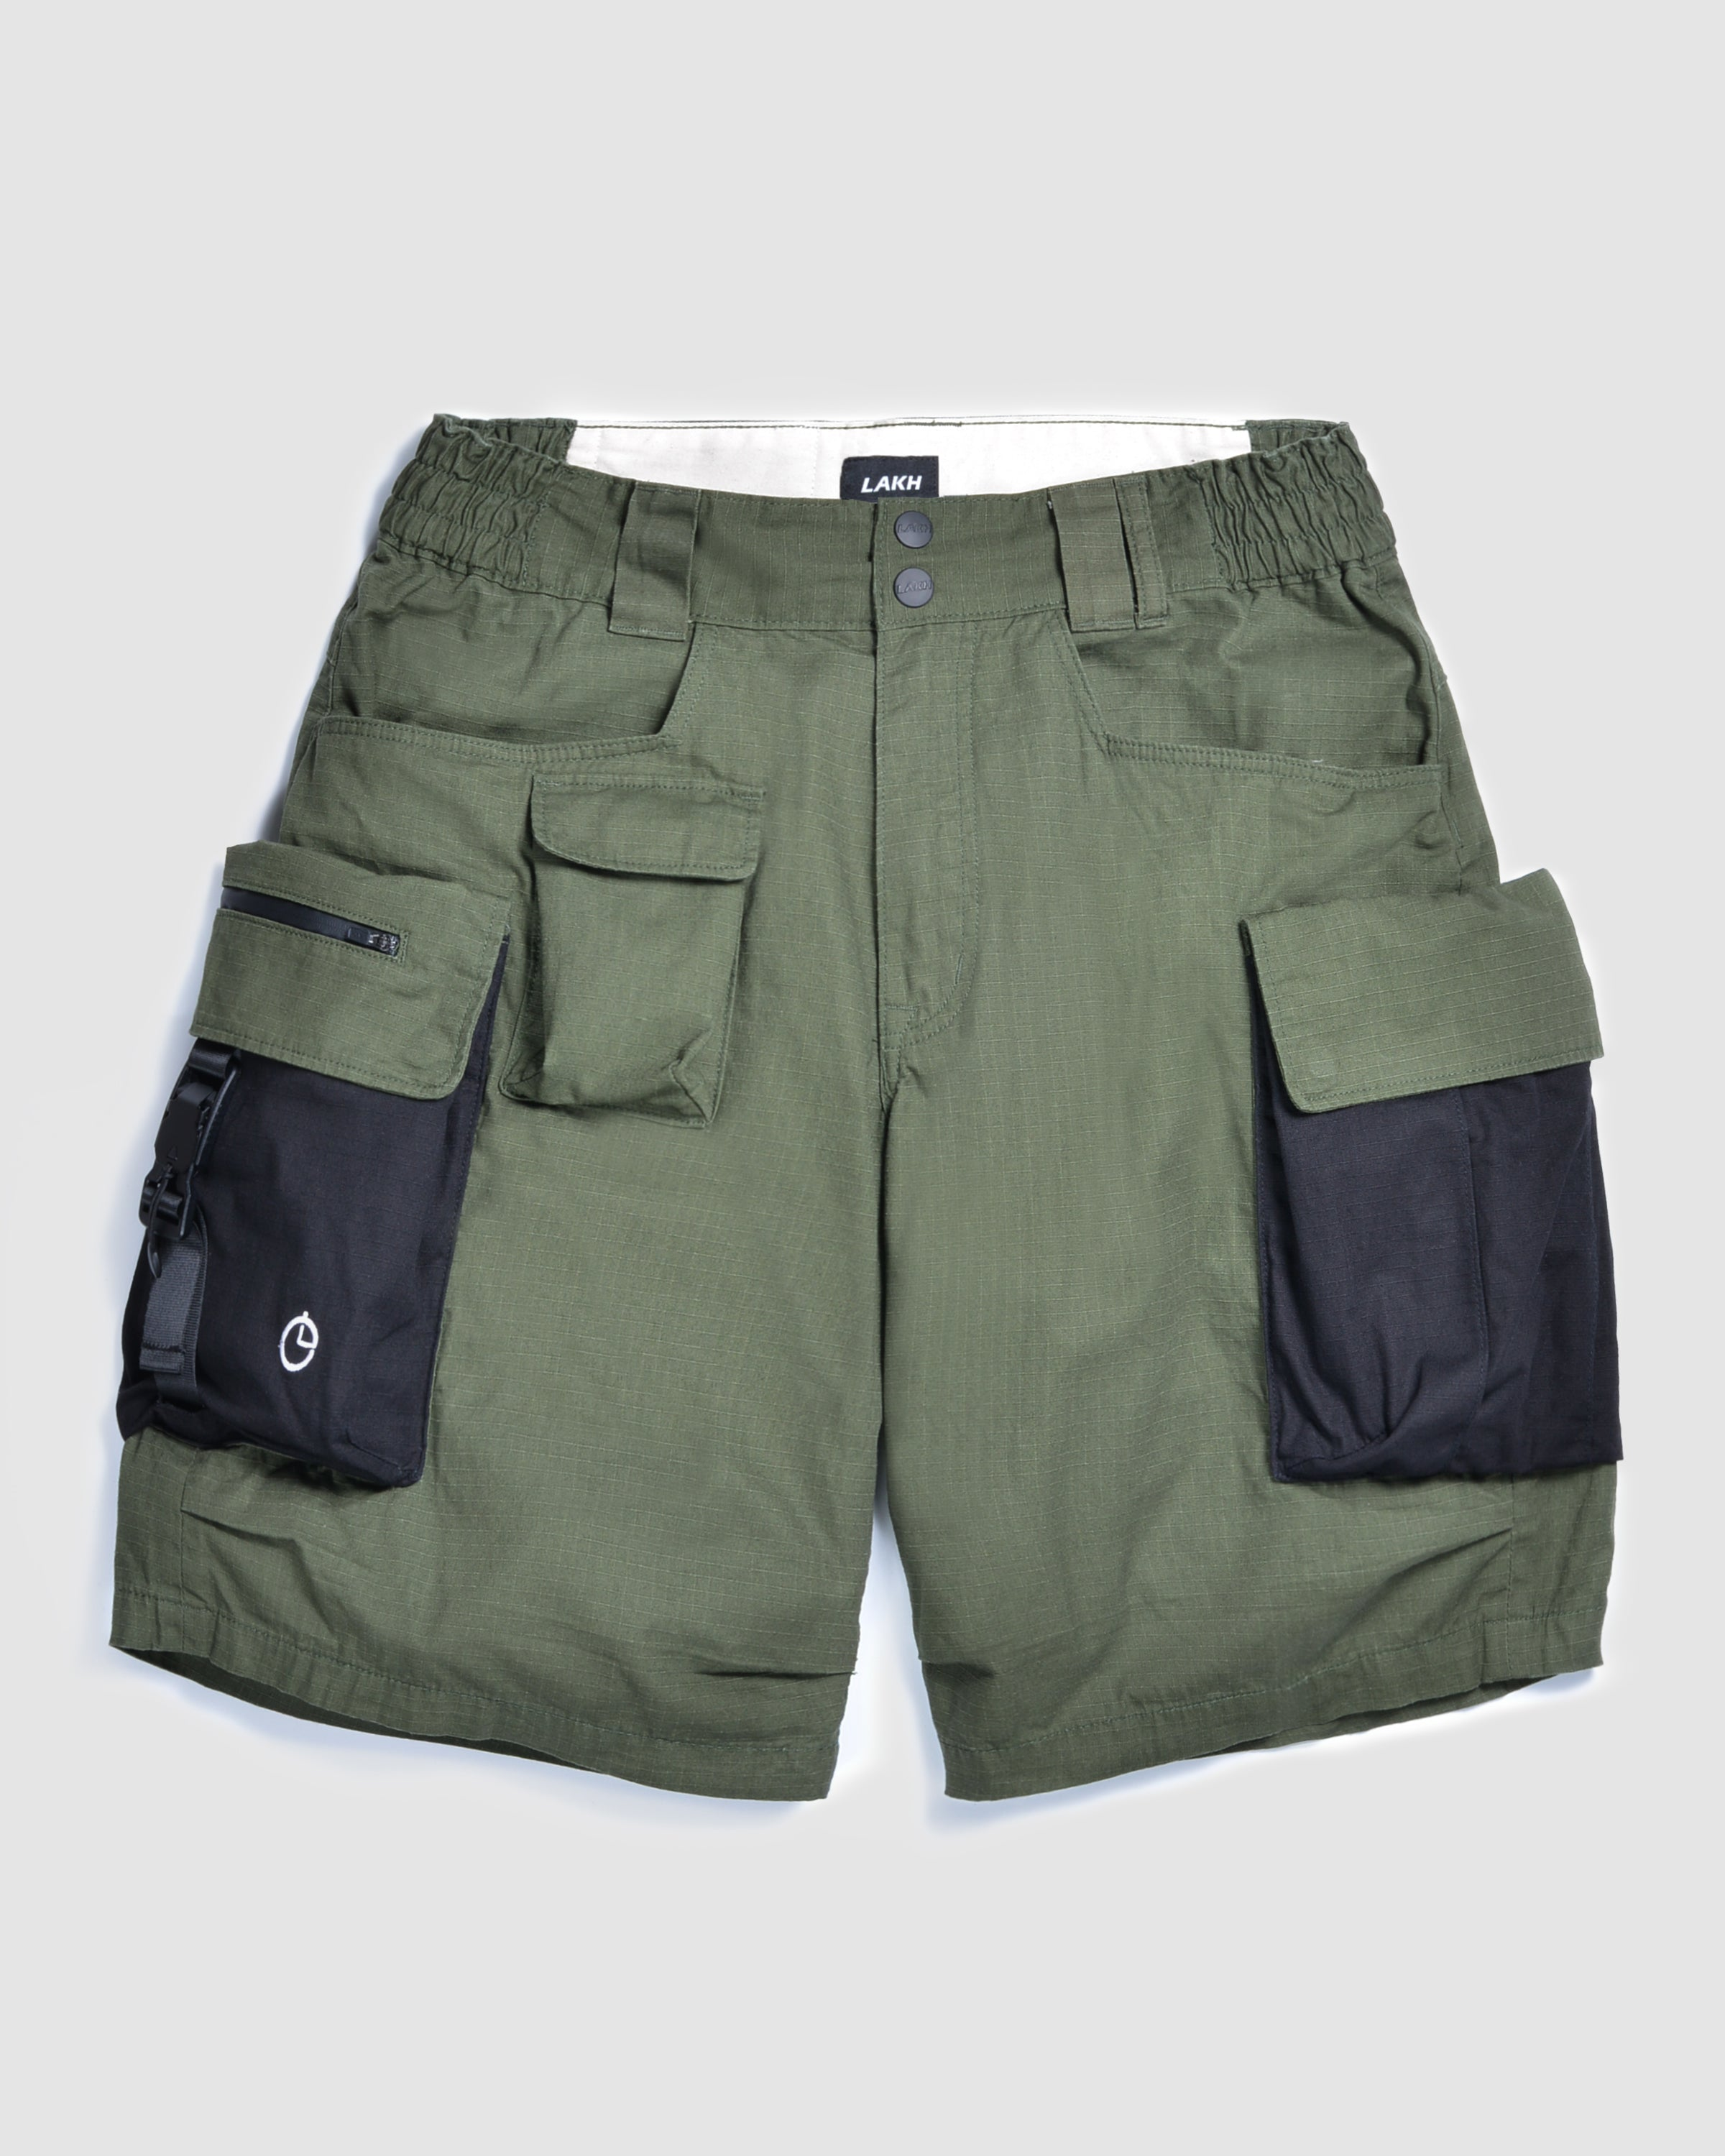 LAKH with SECOND KILL Ten Pockets Cargo Shorts